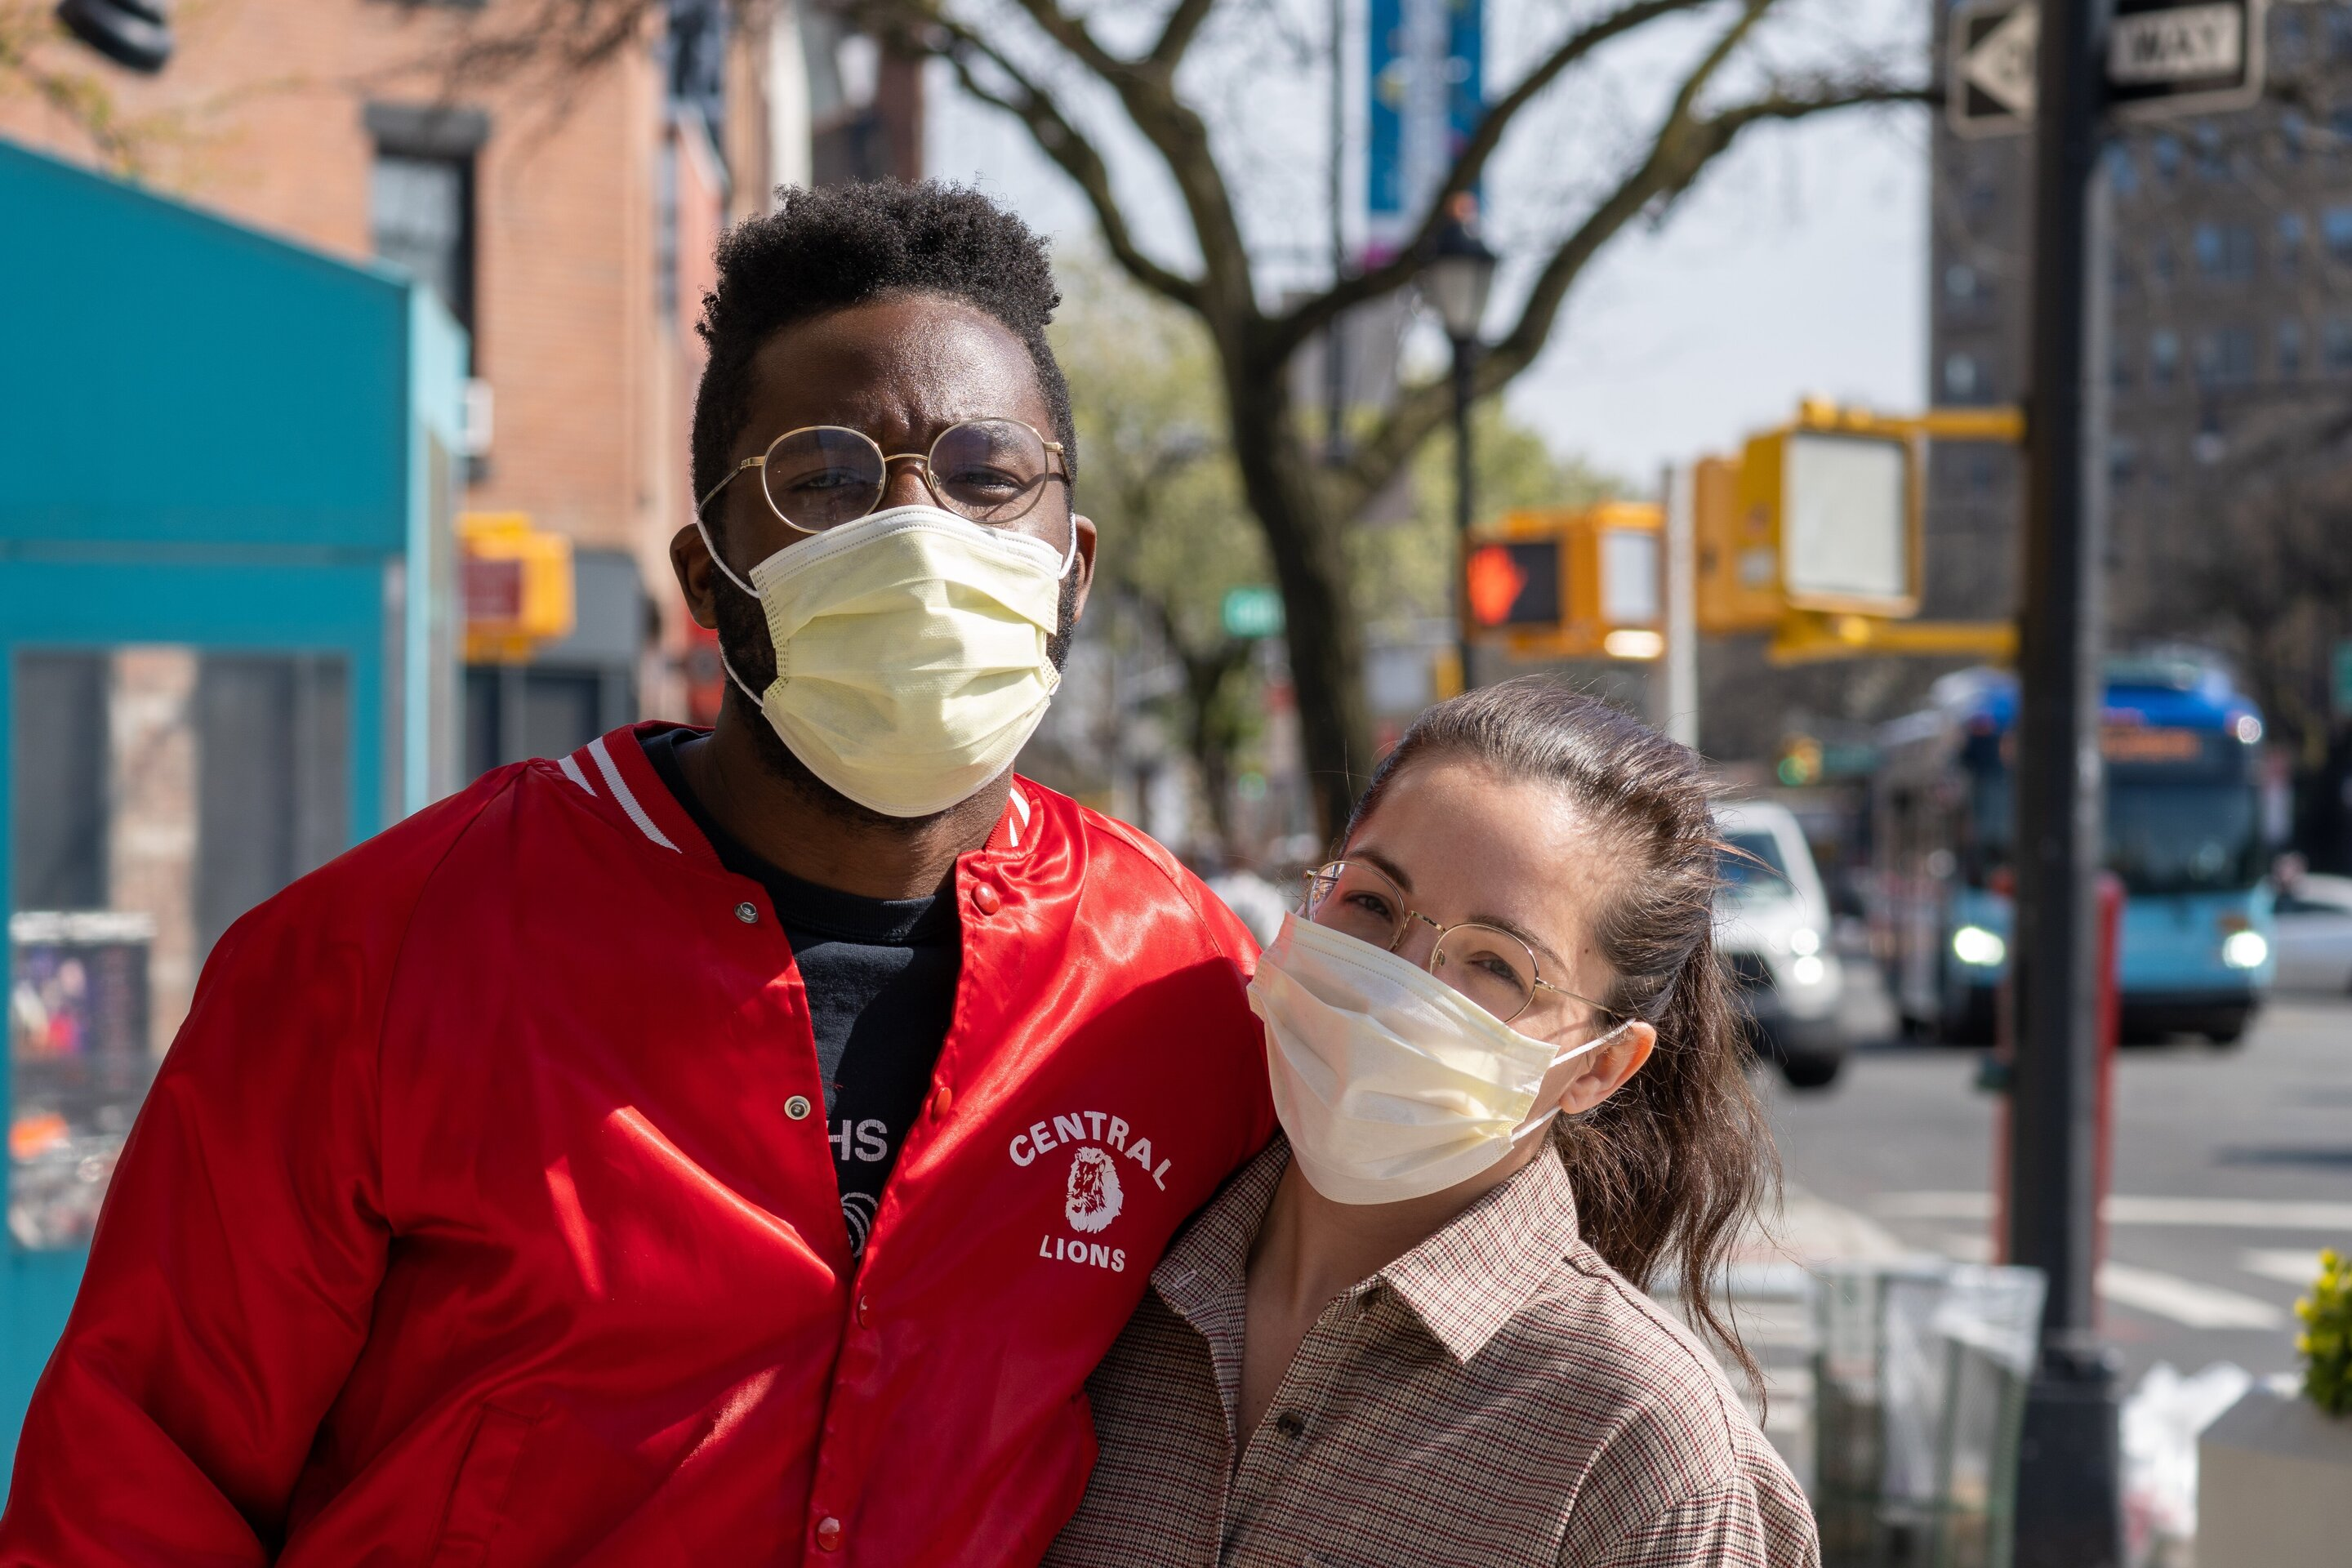 How to properly wear two masks—and other mask-fitting tips following recent CDC advice - Medical Xpress